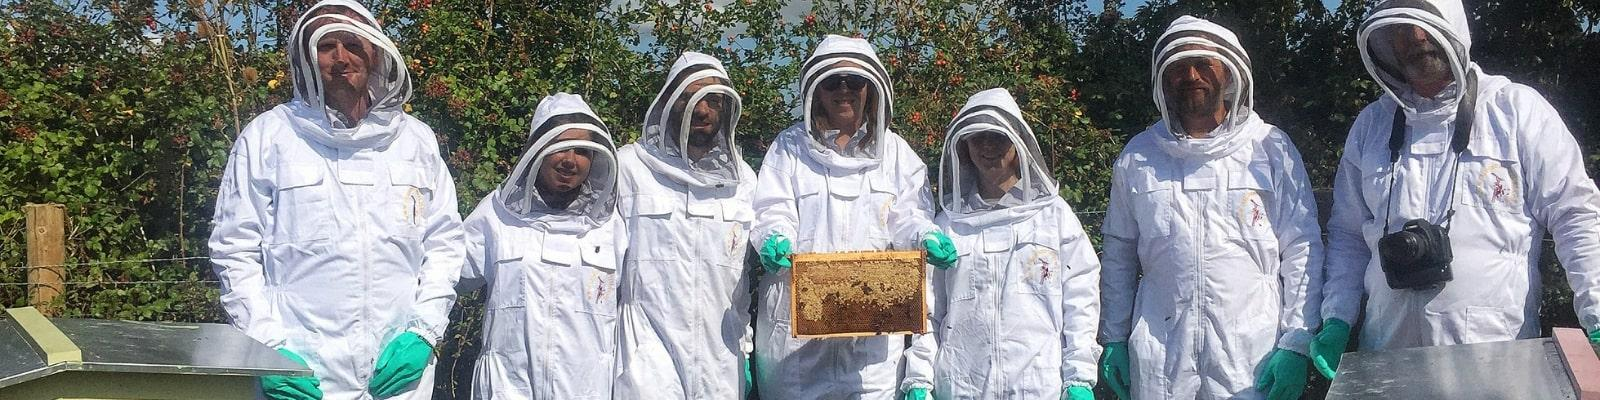 https://www.airfield.ie/wp-content/uploads/2019/02/Bee-Keeping-Class-at-Airfield-Estate-min.jpg